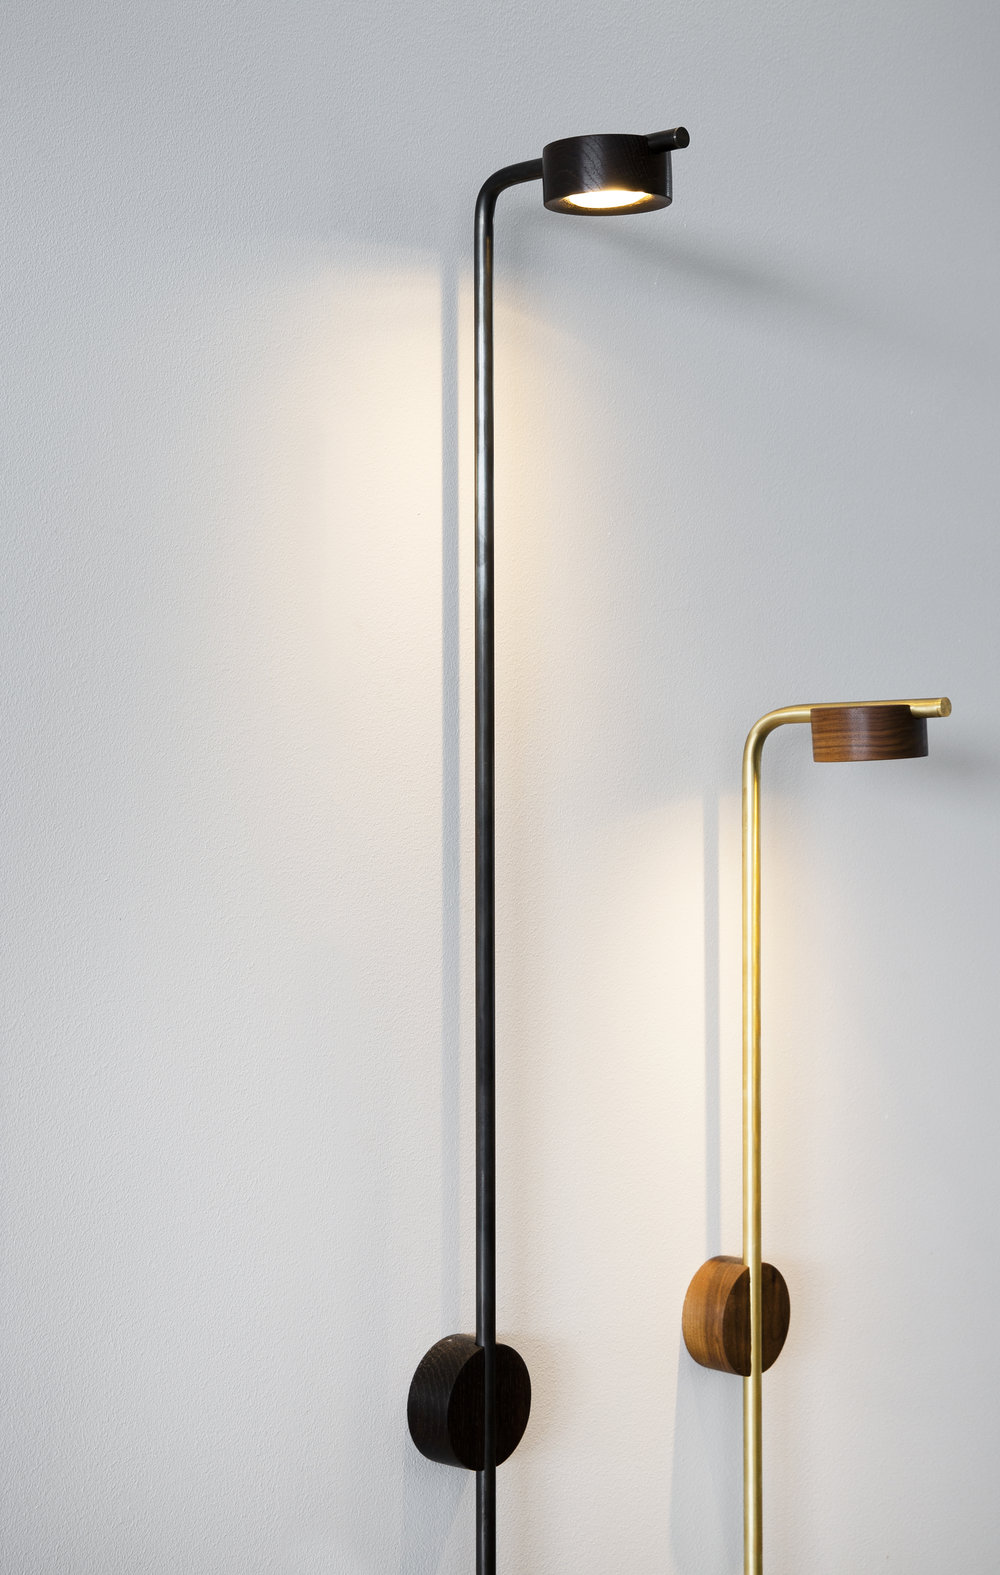 PUCK - Introducing the new puck series both for wall and as a floor lamp. The Puck has a variety of usefulness of options.